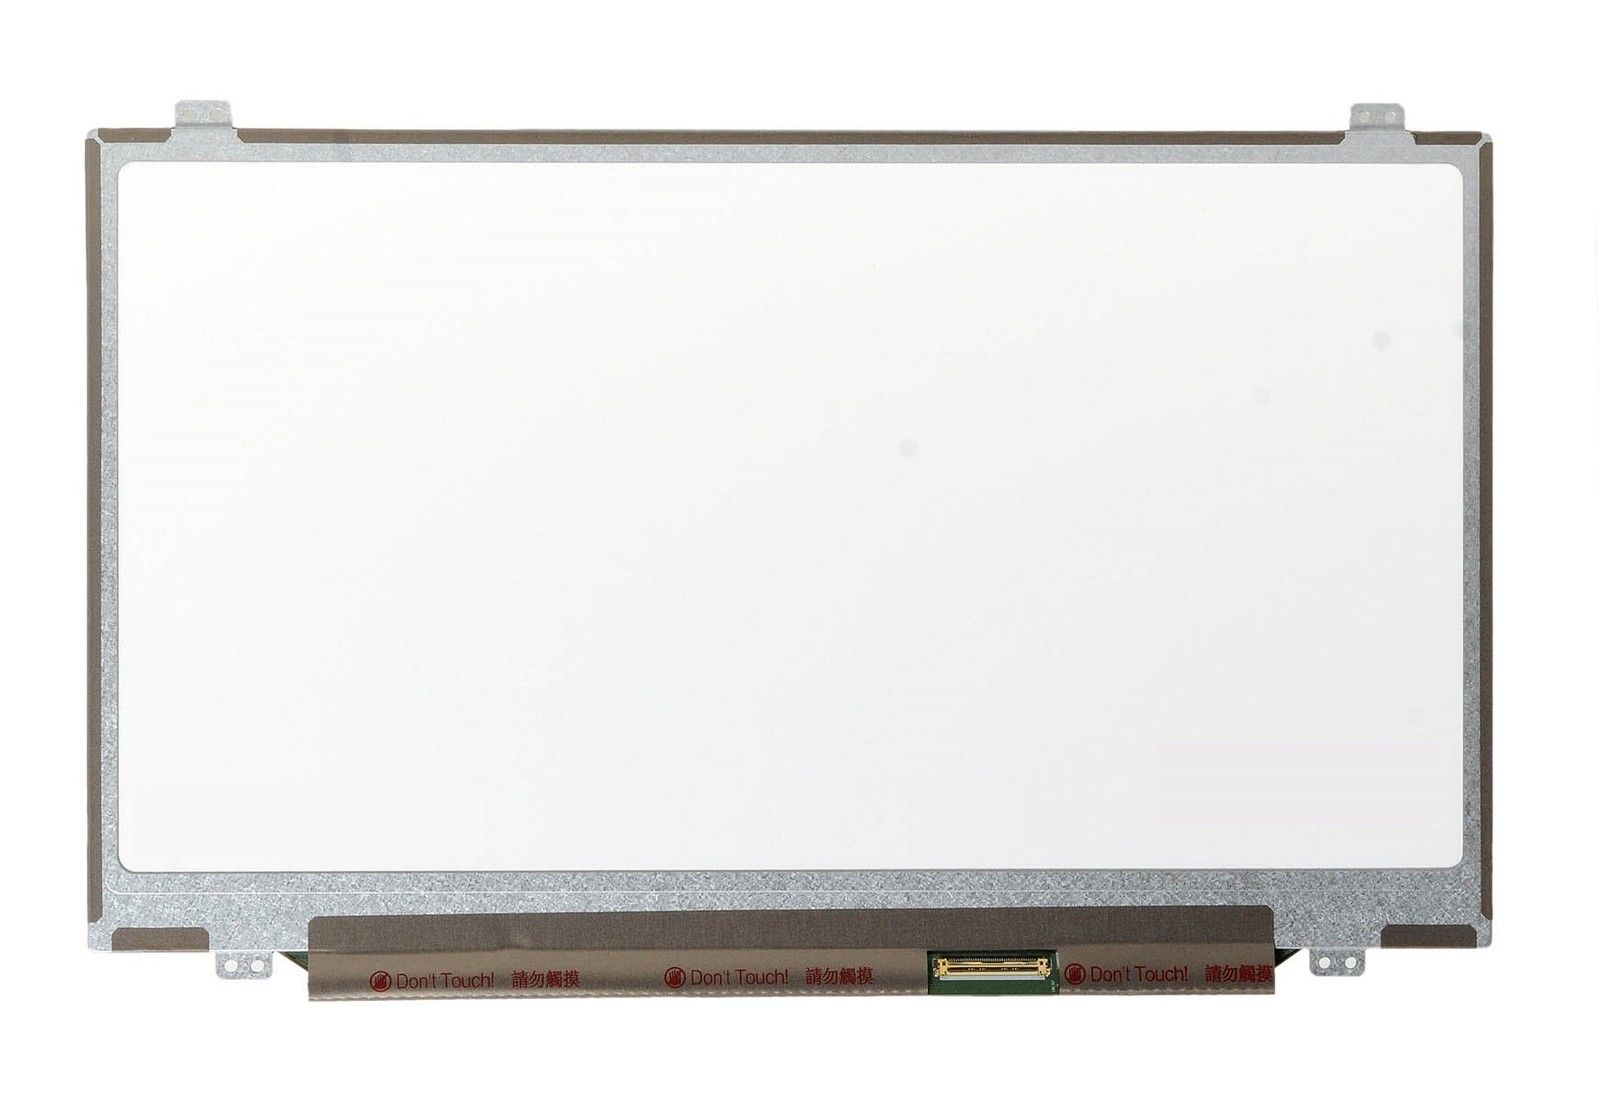 For HP Chromebook New 14.0 LED LCD Display Screen 14-C011NR, 14-C015DX, 14-C020US, 14-C025USFor HP Chromebook New 14.0 LED LCD Display Screen 14-C011NR, 14-C015DX, 14-C020US, 14-C025US